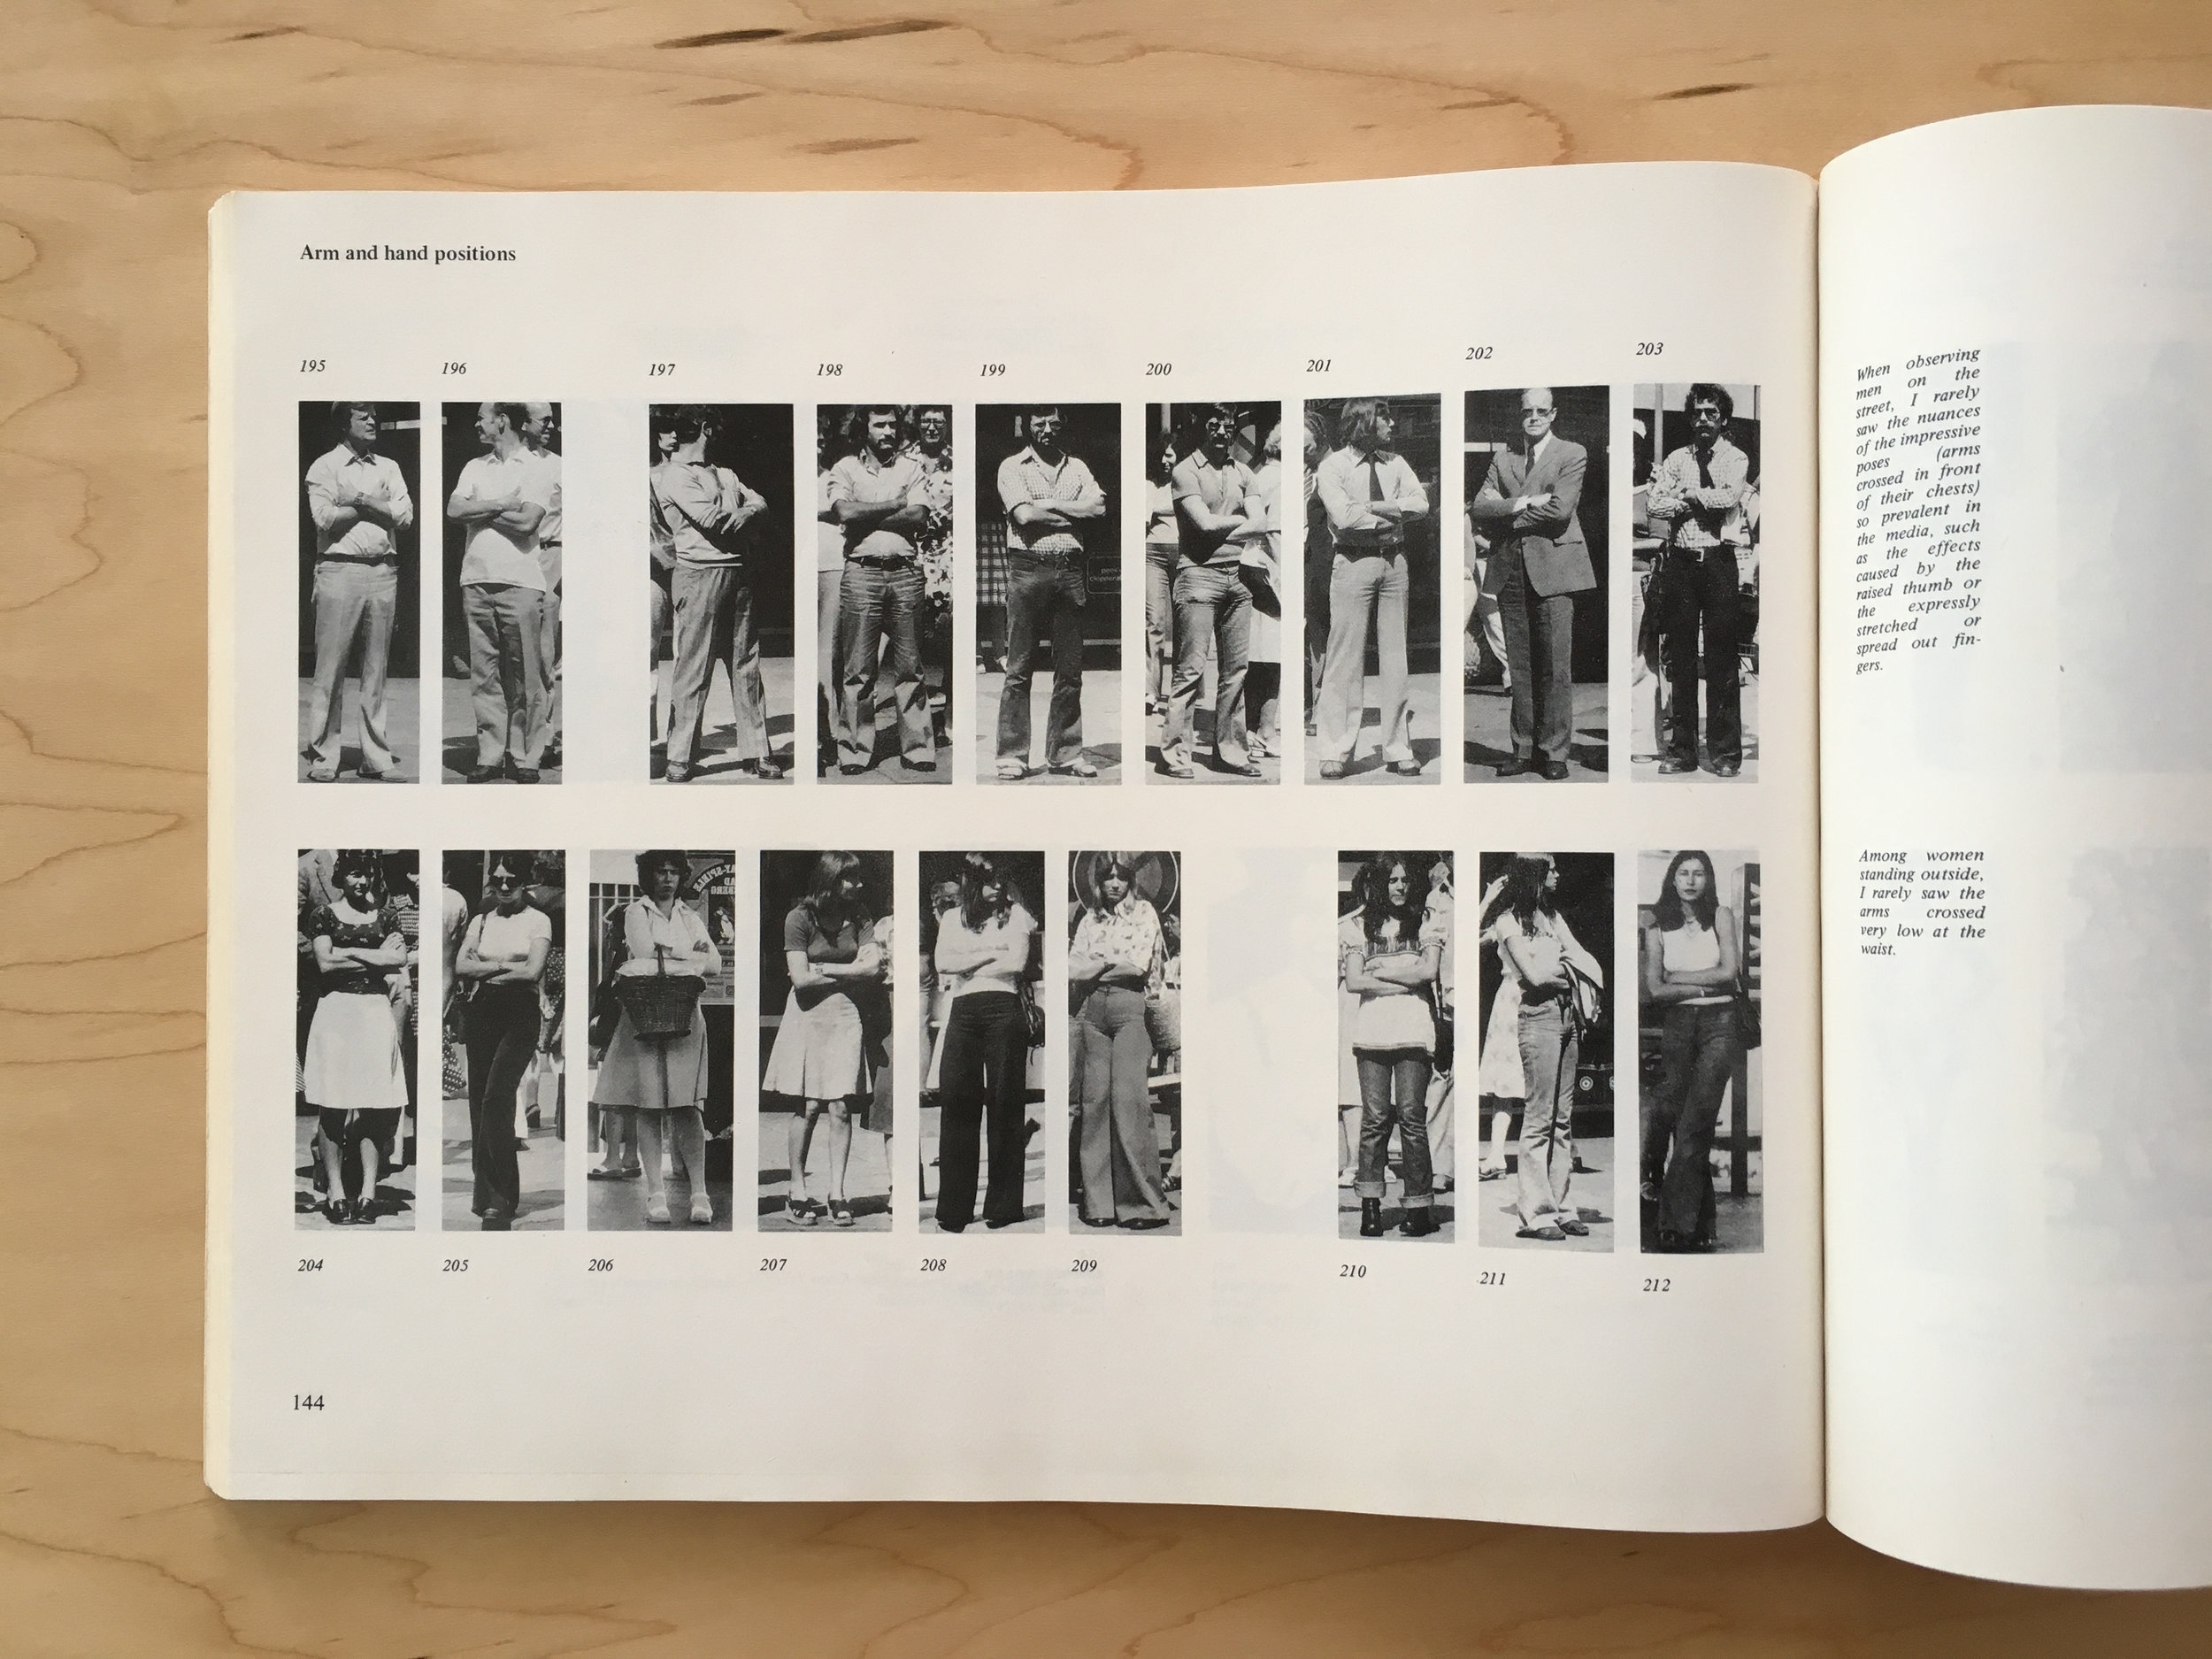 """Detail: Marianne Wex,  'Let's Take Back Our Space': """"Female"""" and """"Male"""" Body Language as a Result of Patriarchal Structure  (Germany: Frauenliteratur Verlag, 1984)."""